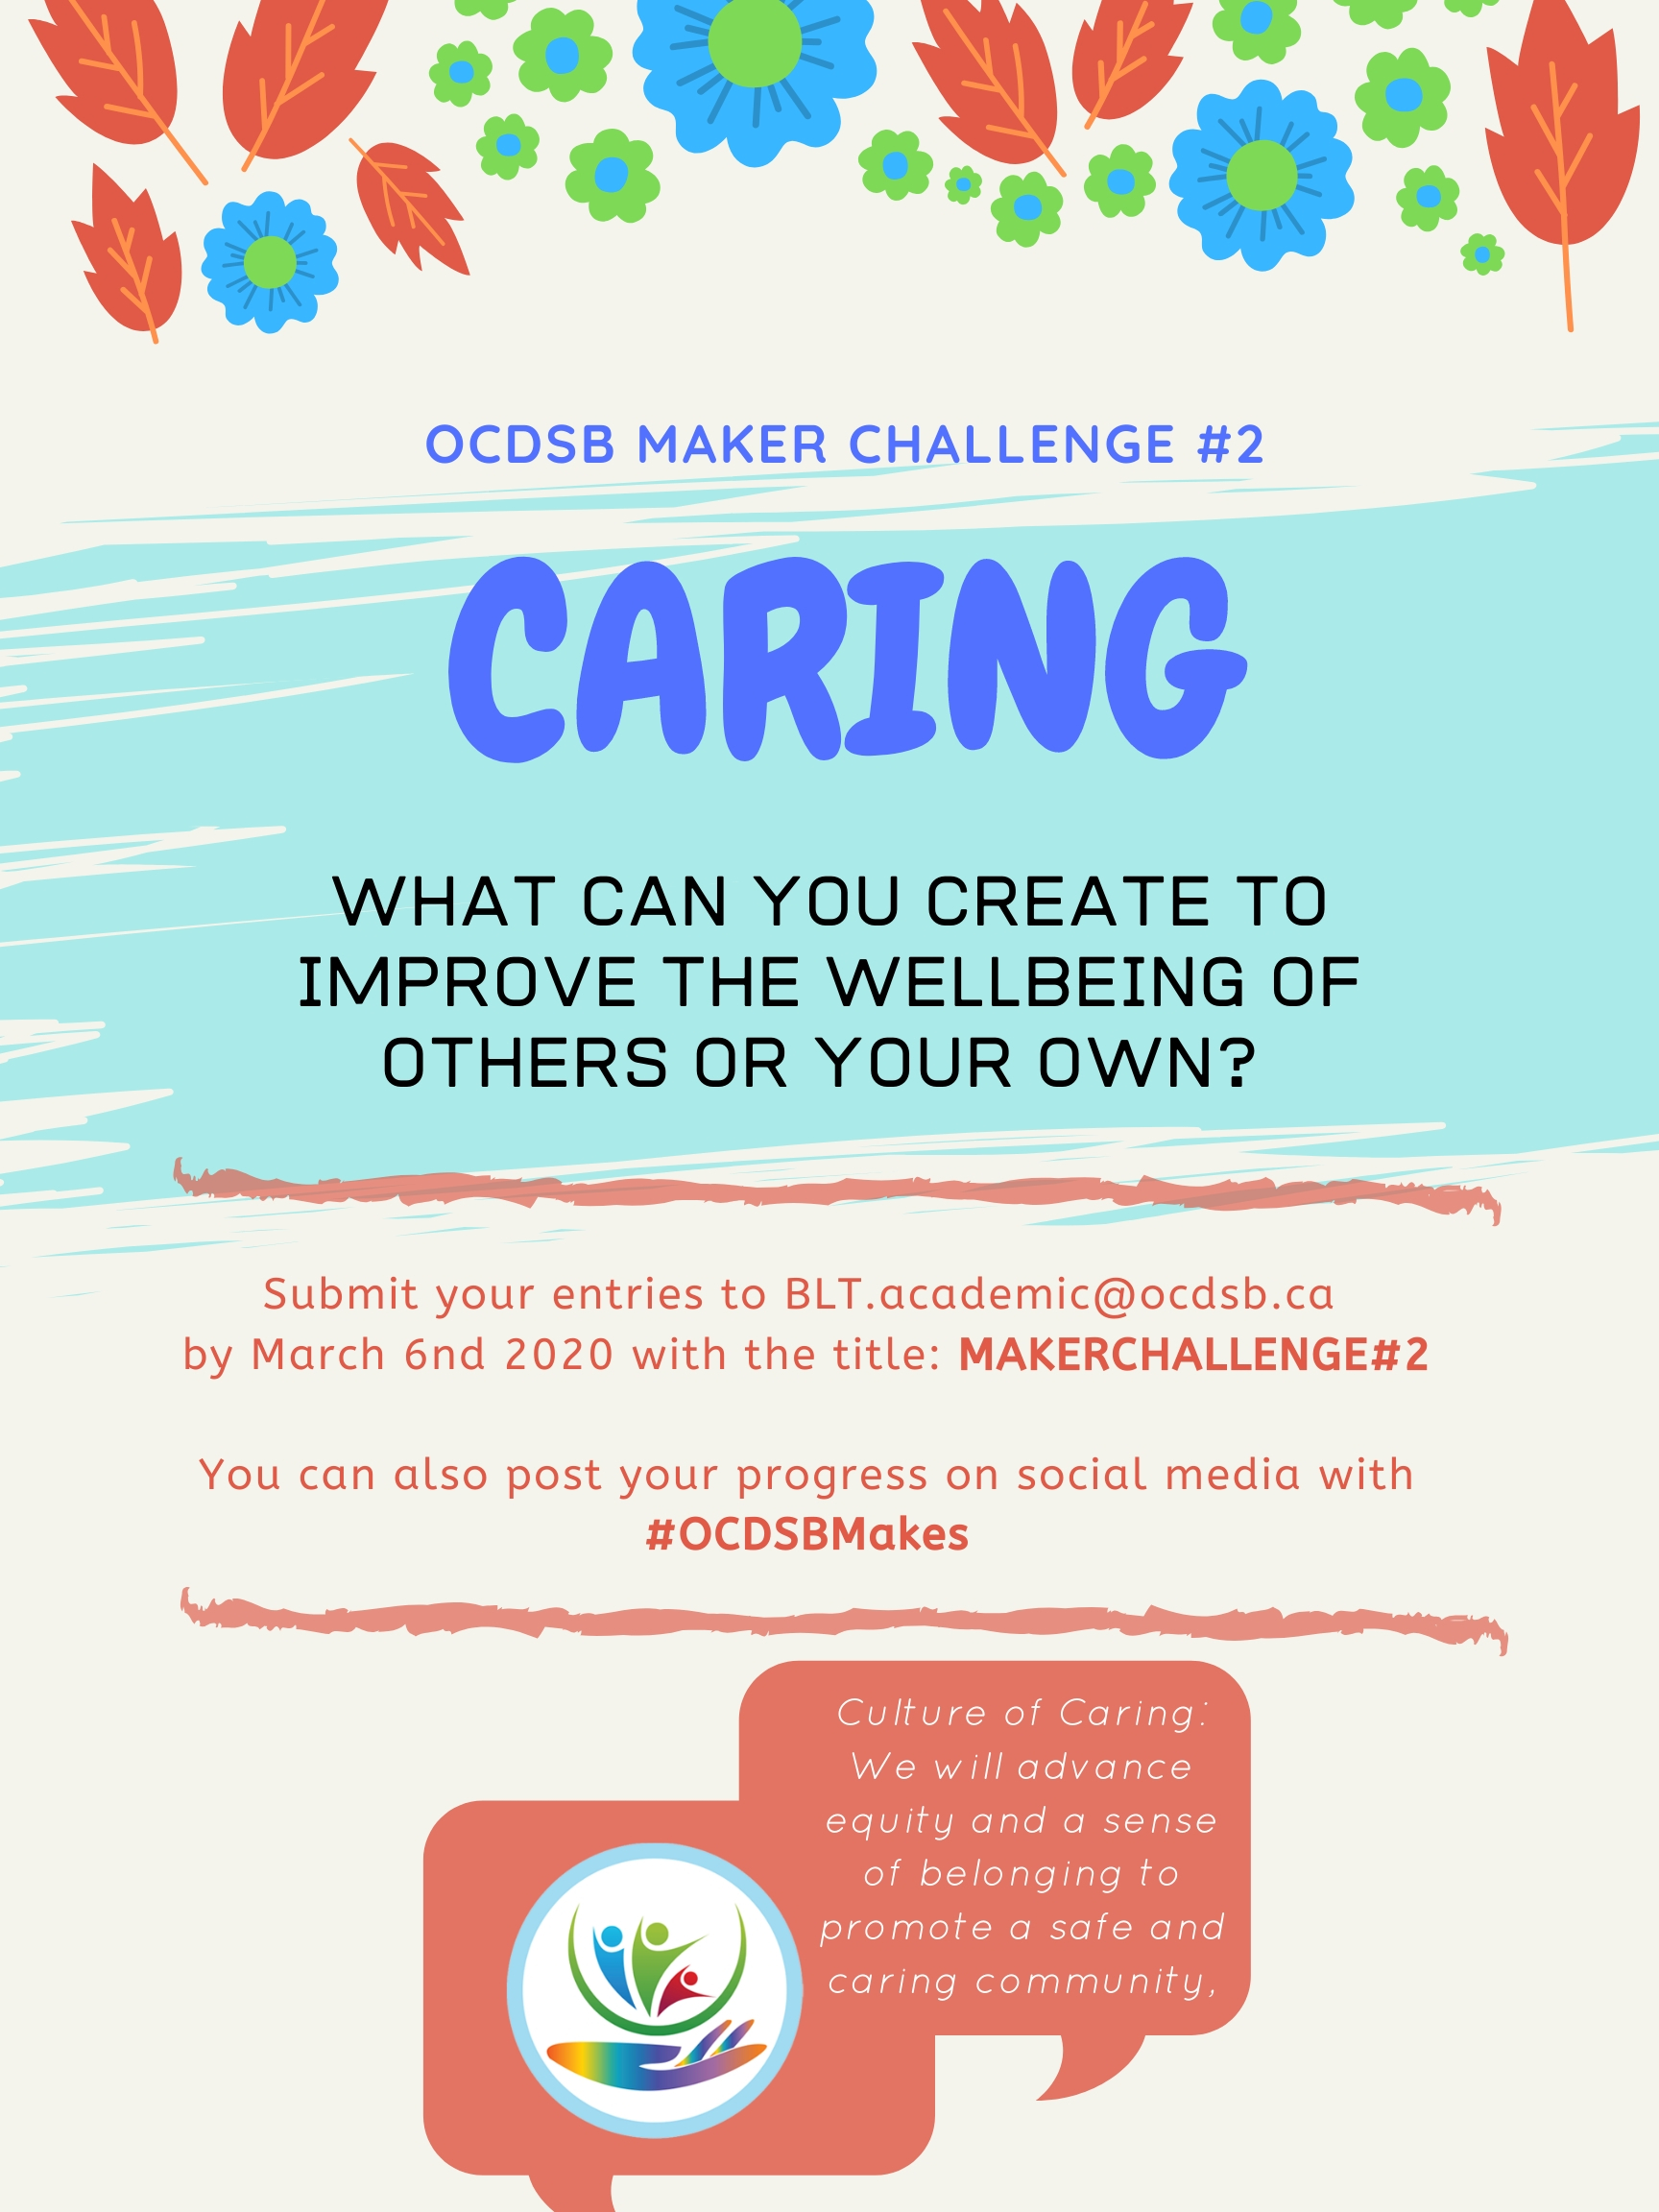 Poster inviting students to participate in a design challenge around caring.